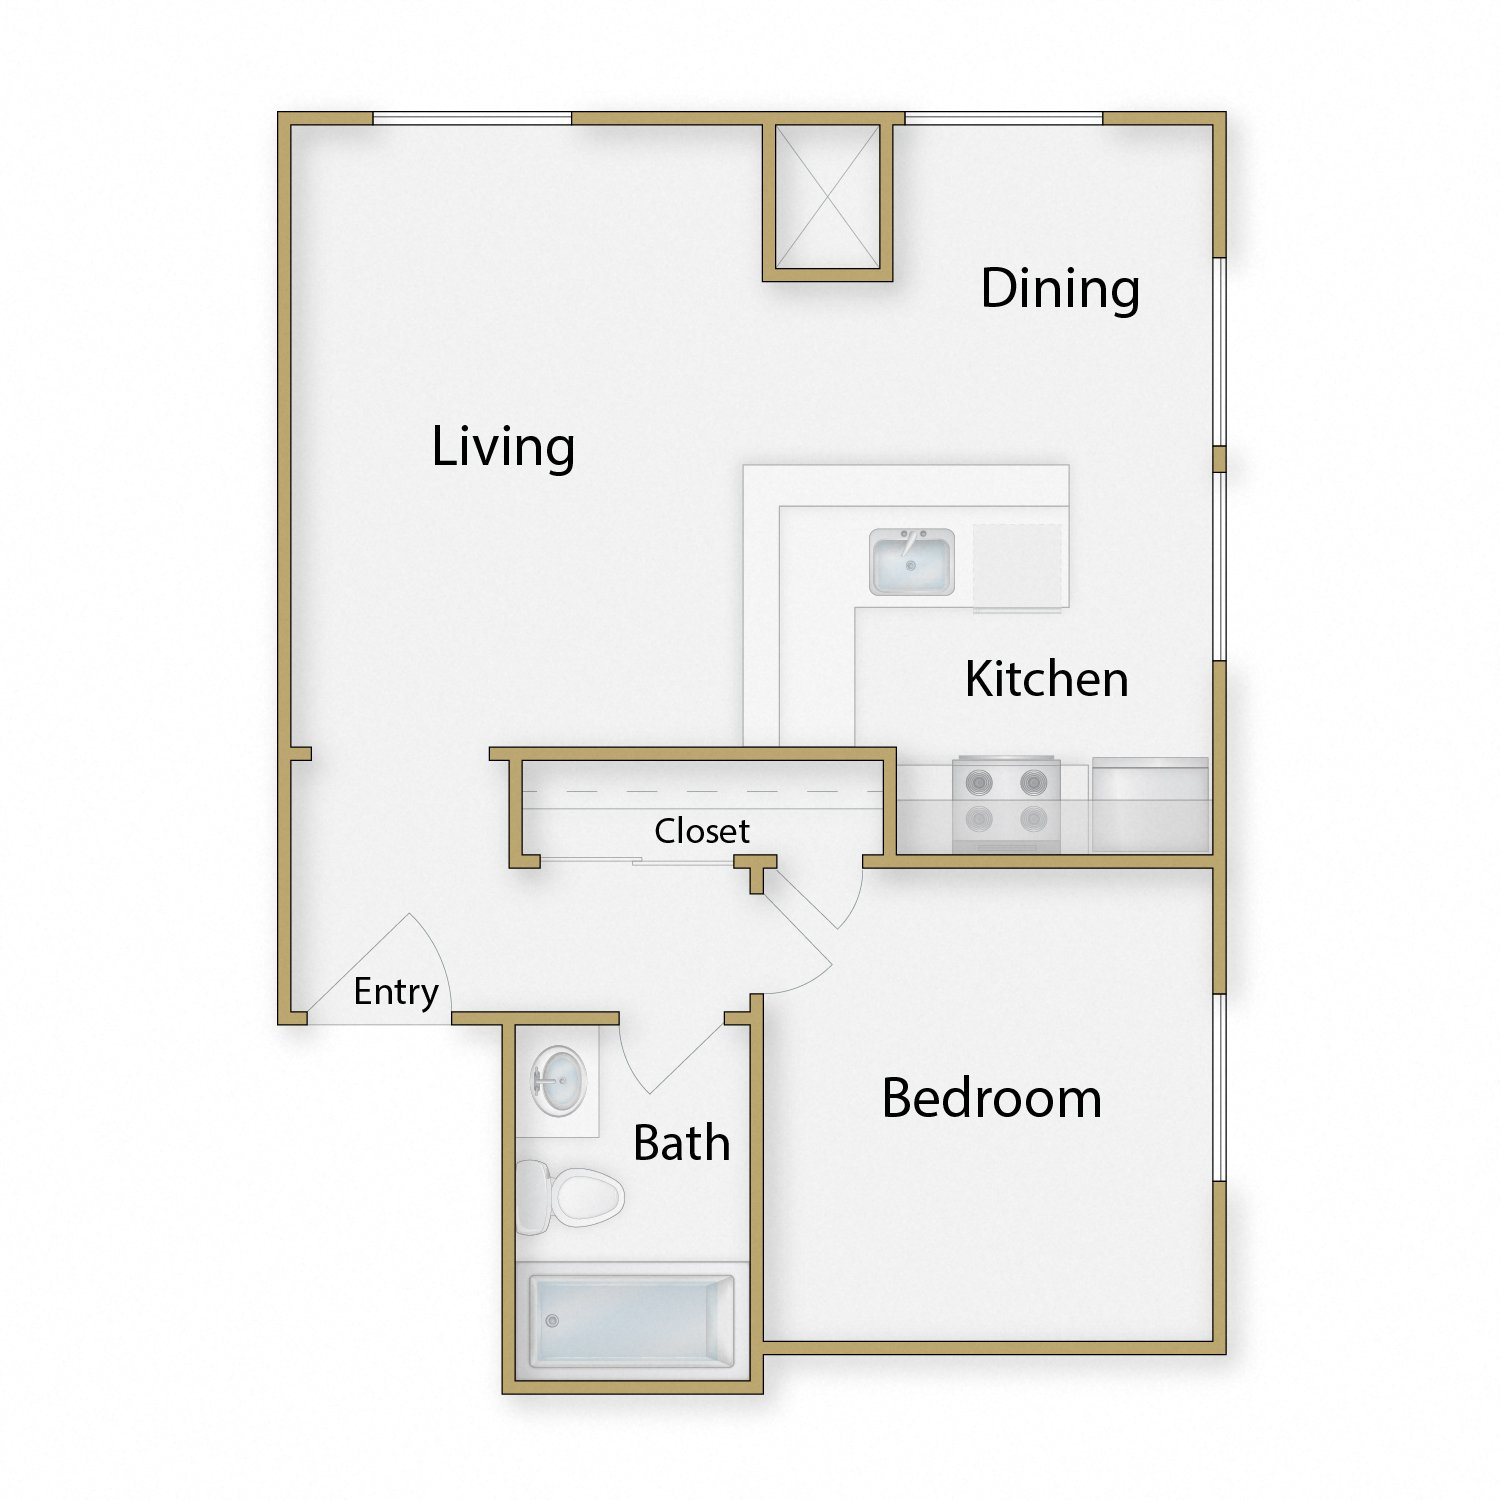 Berkley floor plan diagram. One bedroom, one bathroom, and an open kitchen dining and living area.